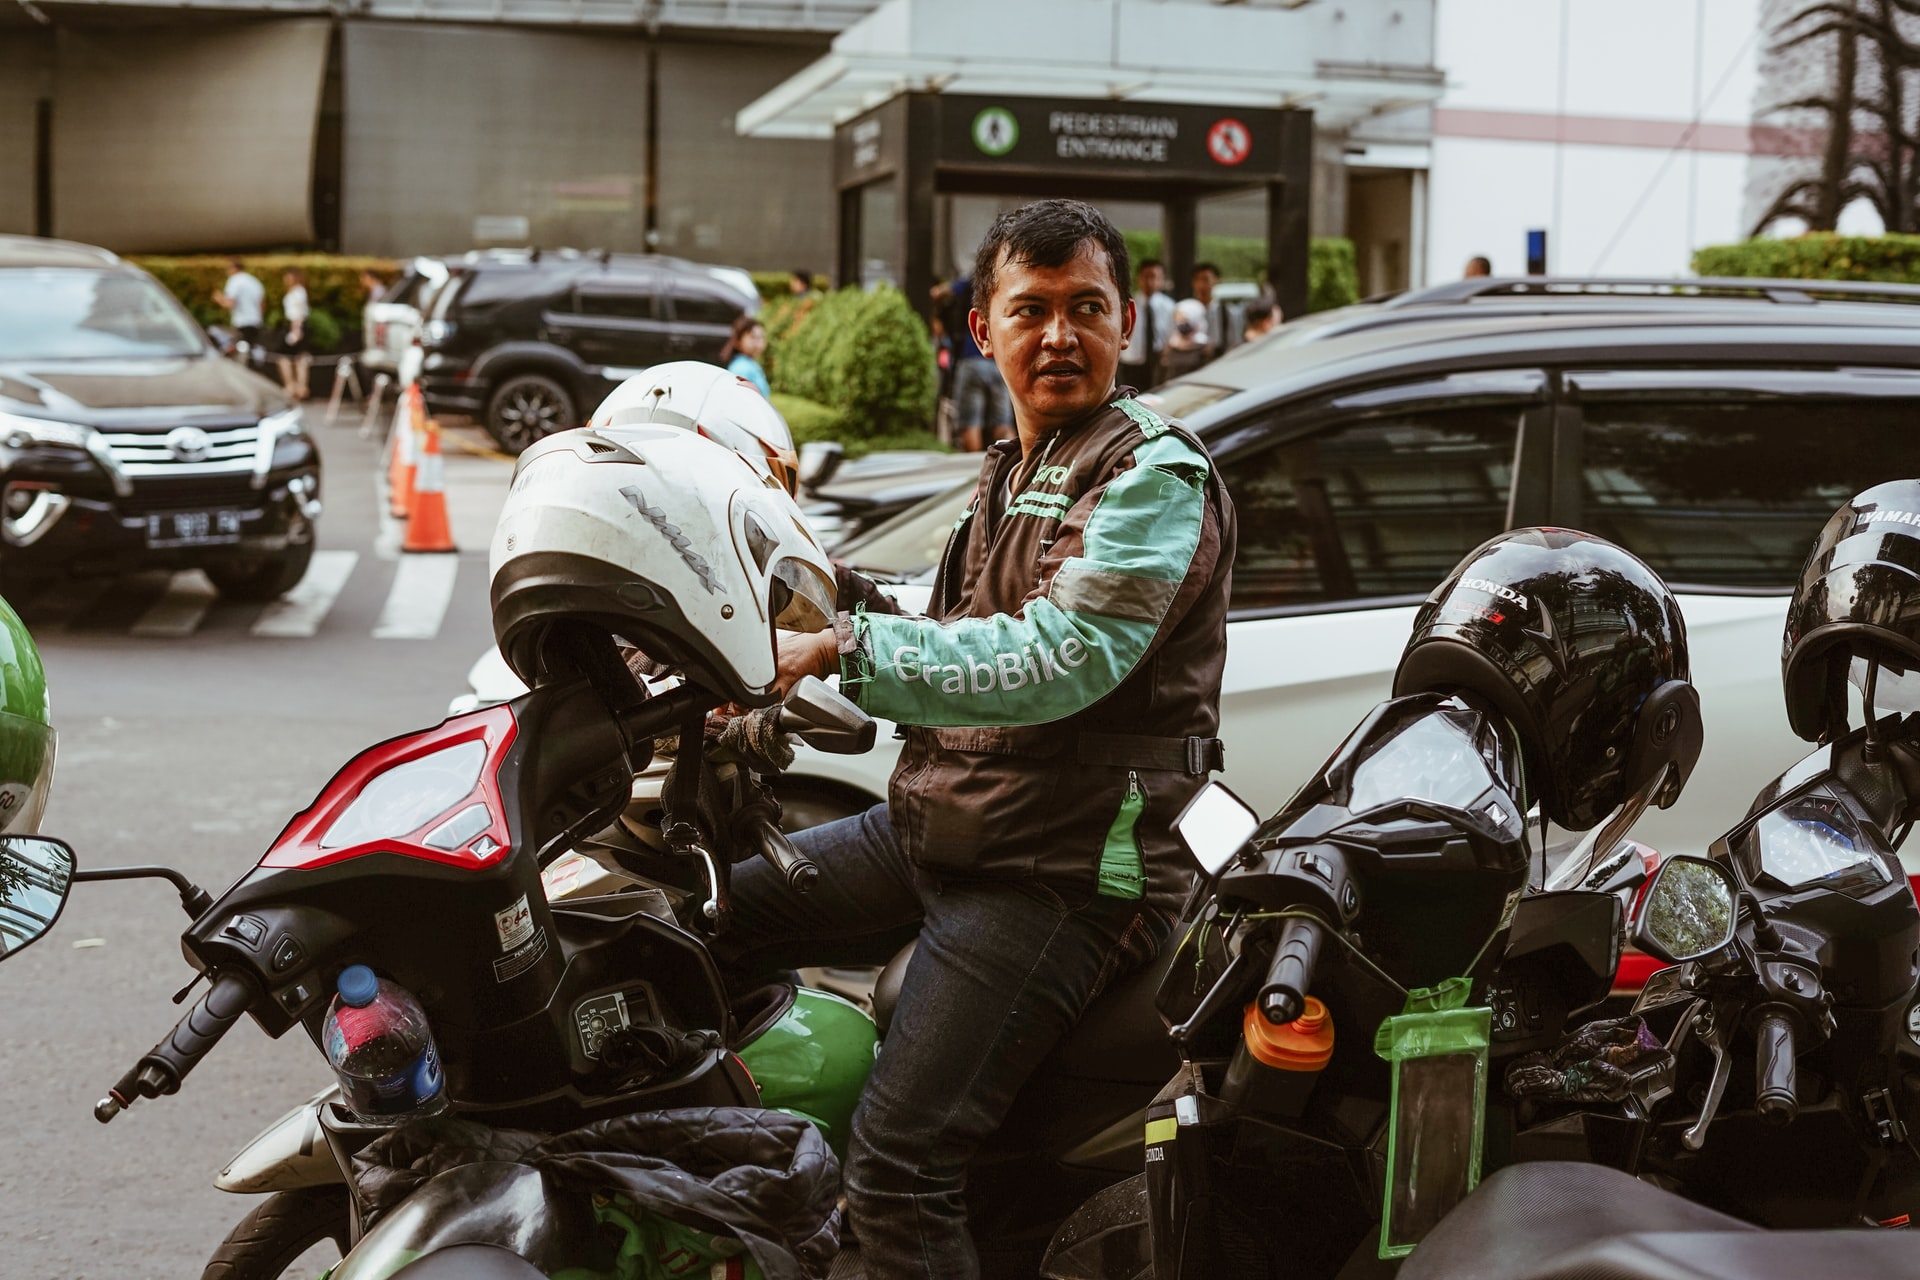 GrabBike, Grab, motorbikes, motorcycles, transportation, Indonesia